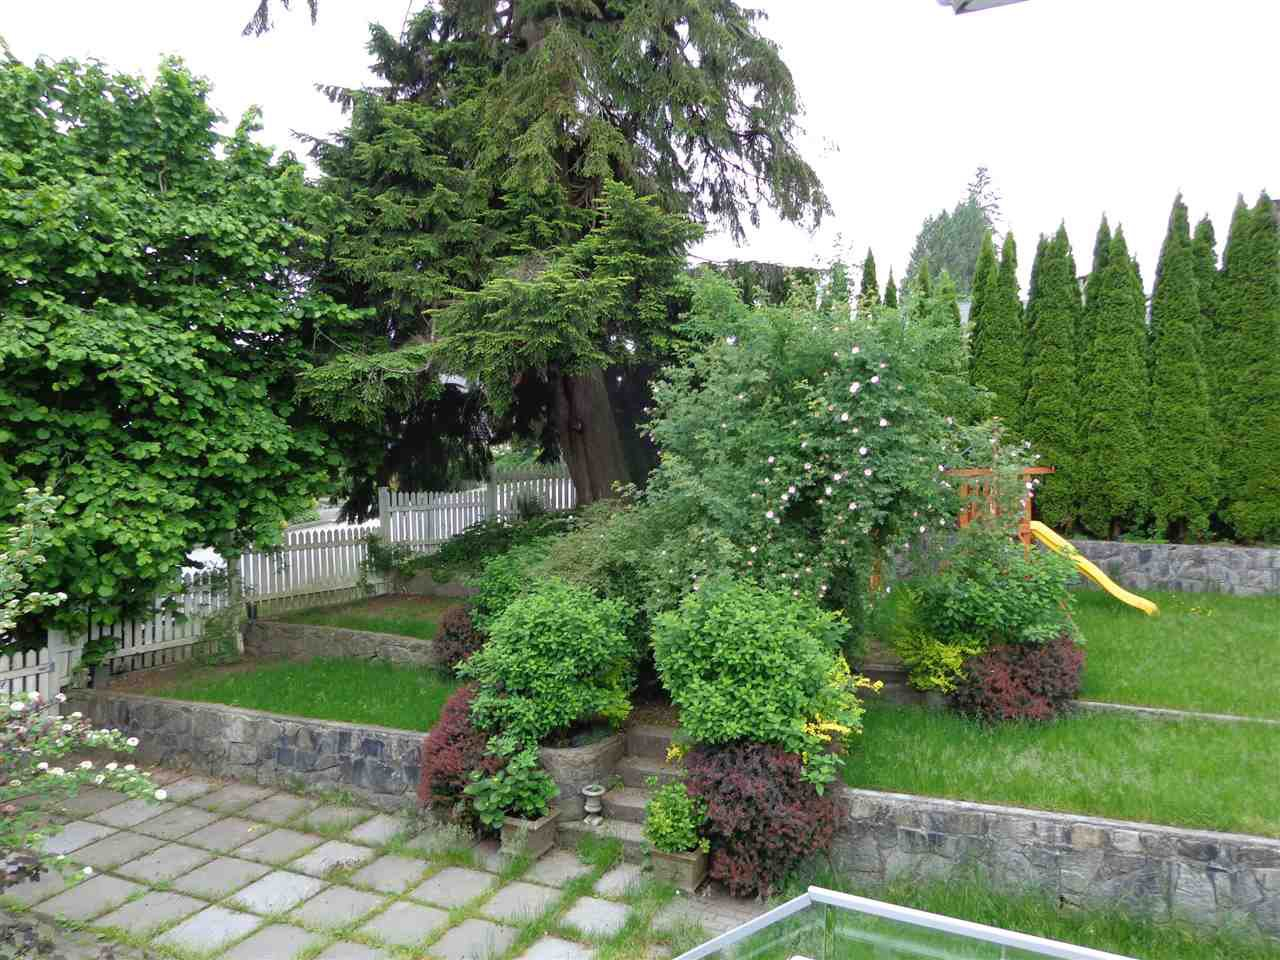 Photo 12: Photos: 4210 GLENHAVEN CRESCENT in North Vancouver: Dollarton House for sale : MLS®# R2373969